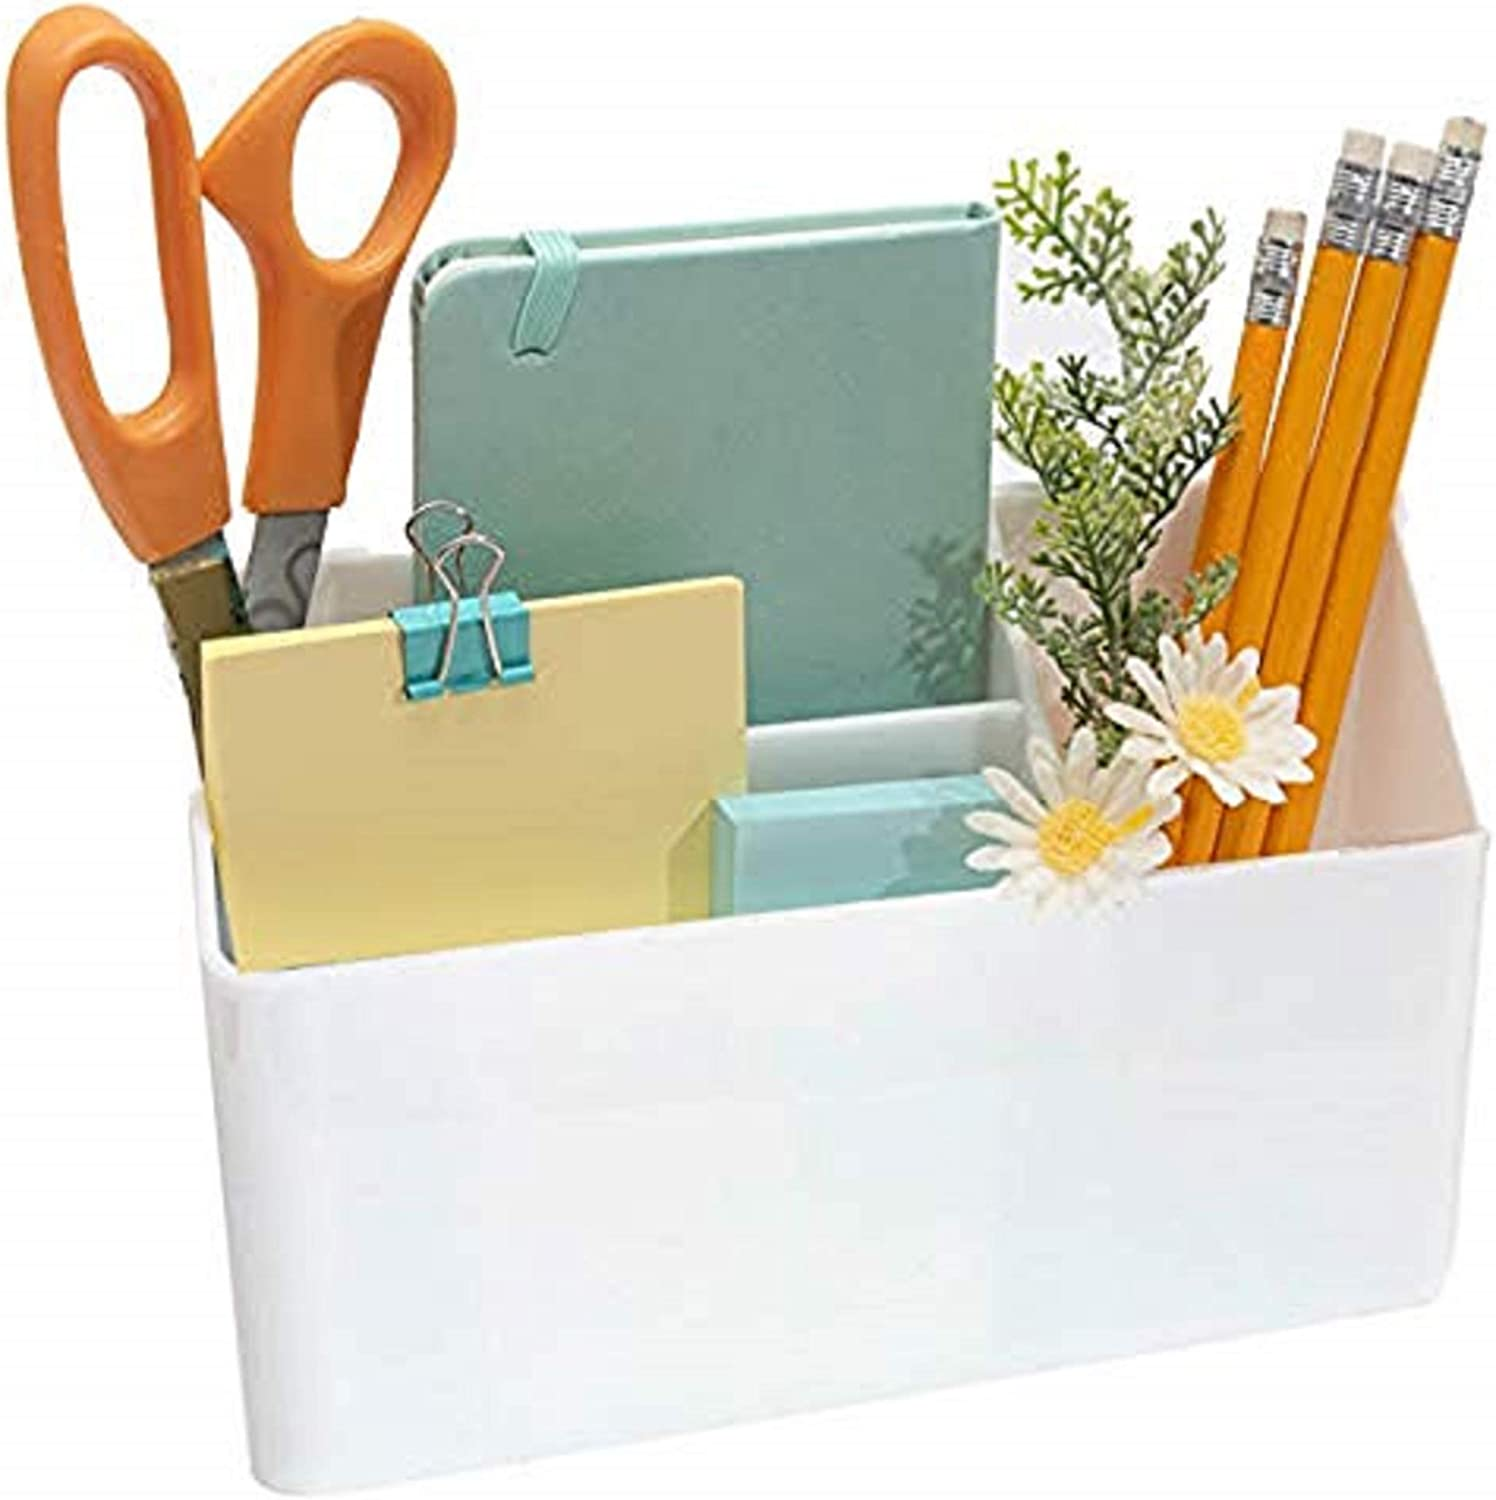 The Most Sturdy Hanging Organizer - with Powerful Suction Cups and 3 Compartments for Storage for Your Locker, Whiteboard, Fridge and Office Accessories